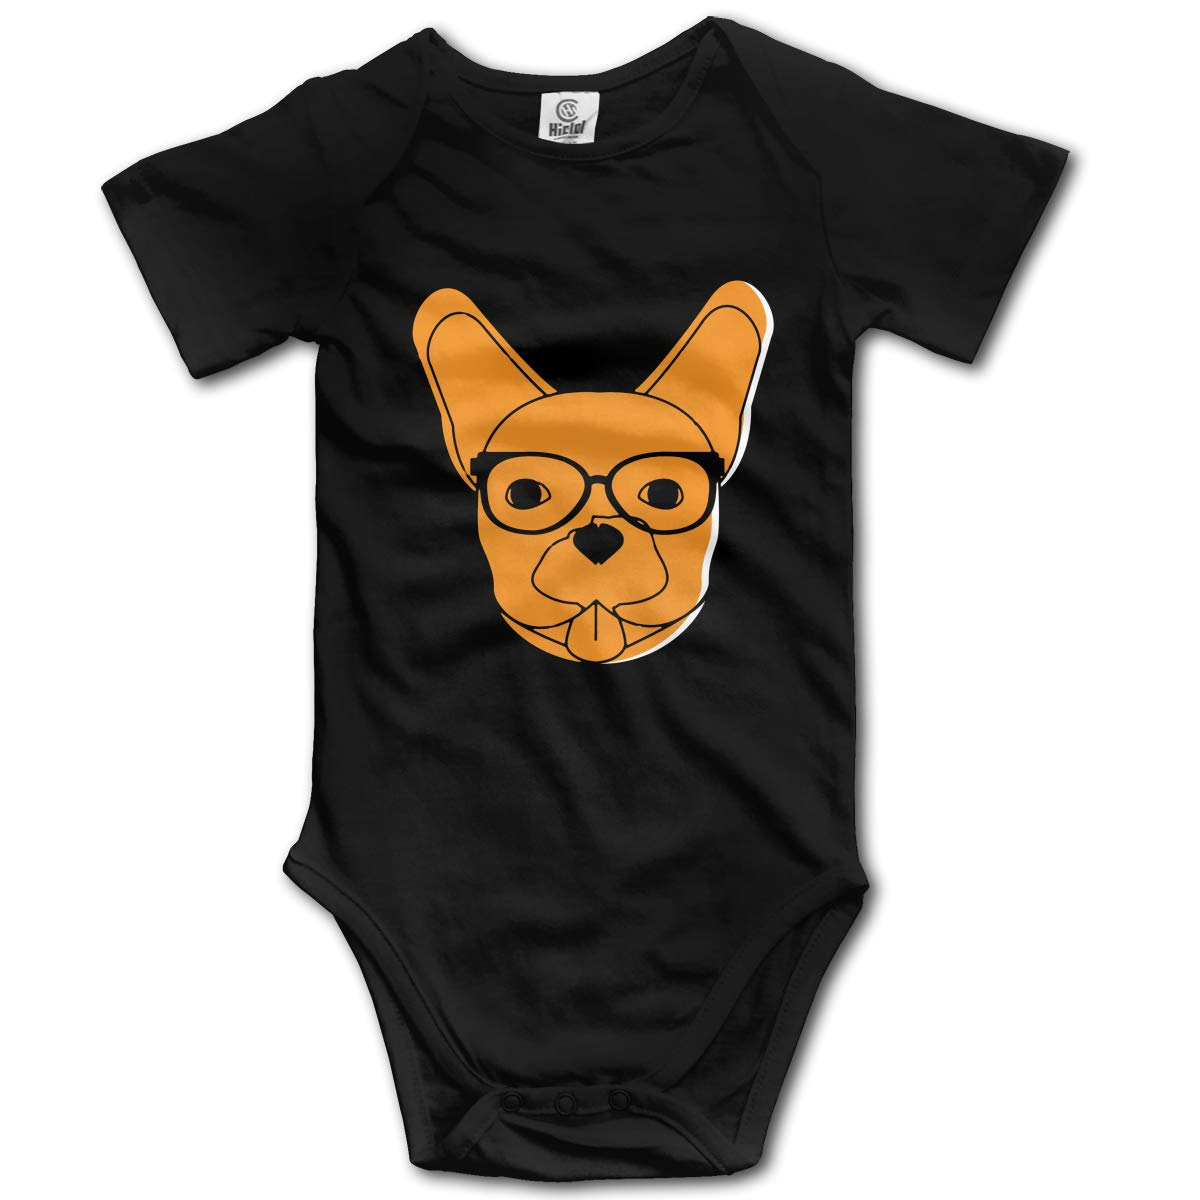 French Bulldog Dog Unisex Solid Baby 100/% Organic Cotton Romper Bodysuit Tops 0-24M